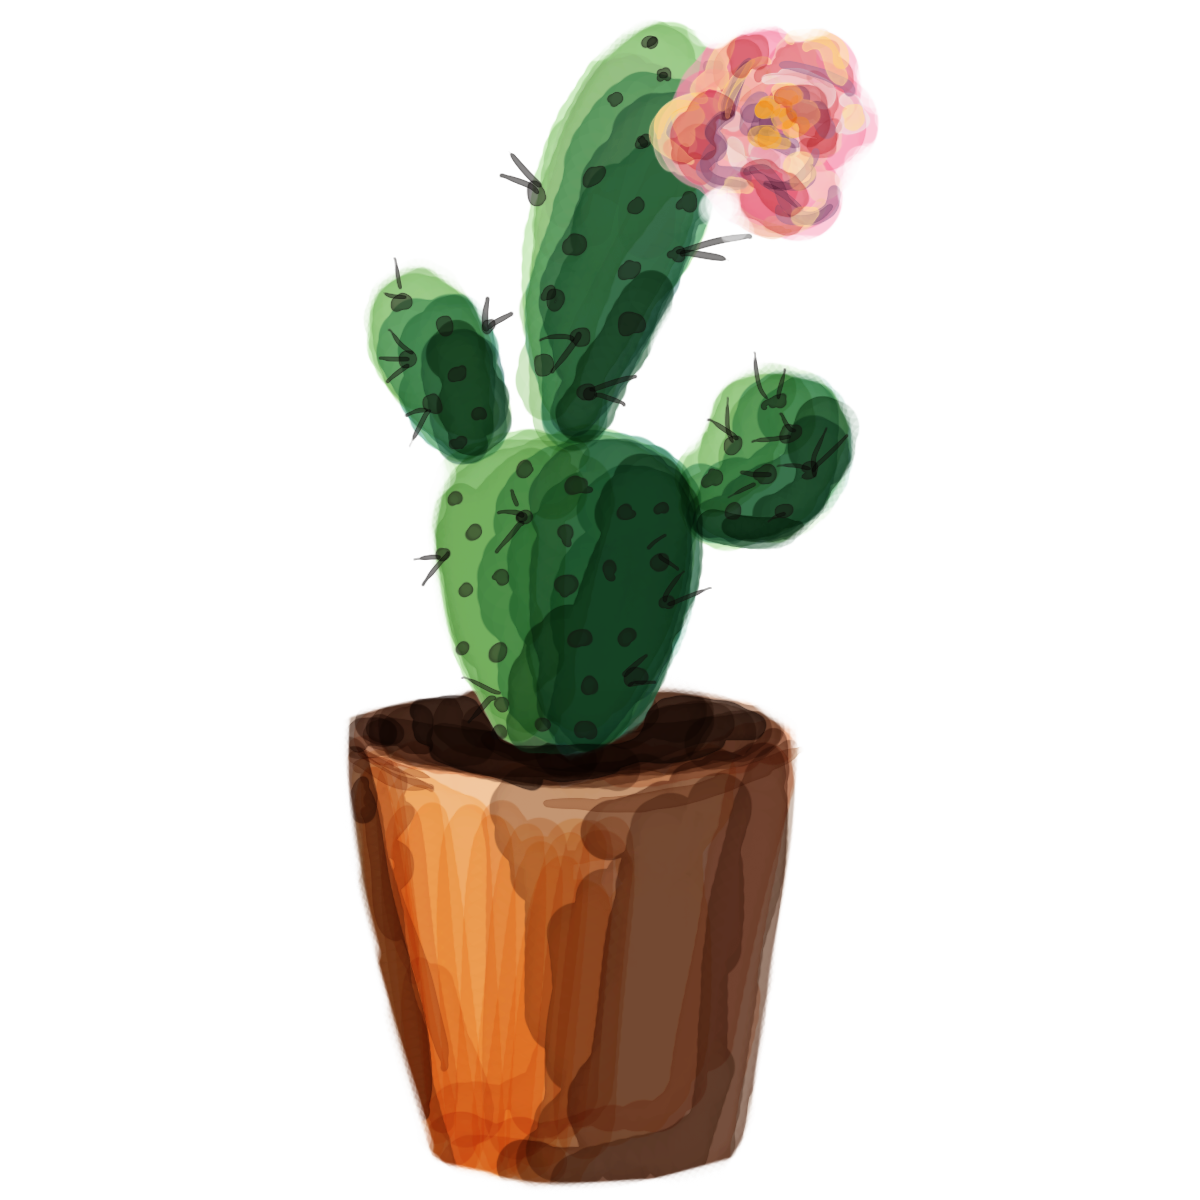 Tumblr png cactus. Pin by charlotte yaklich